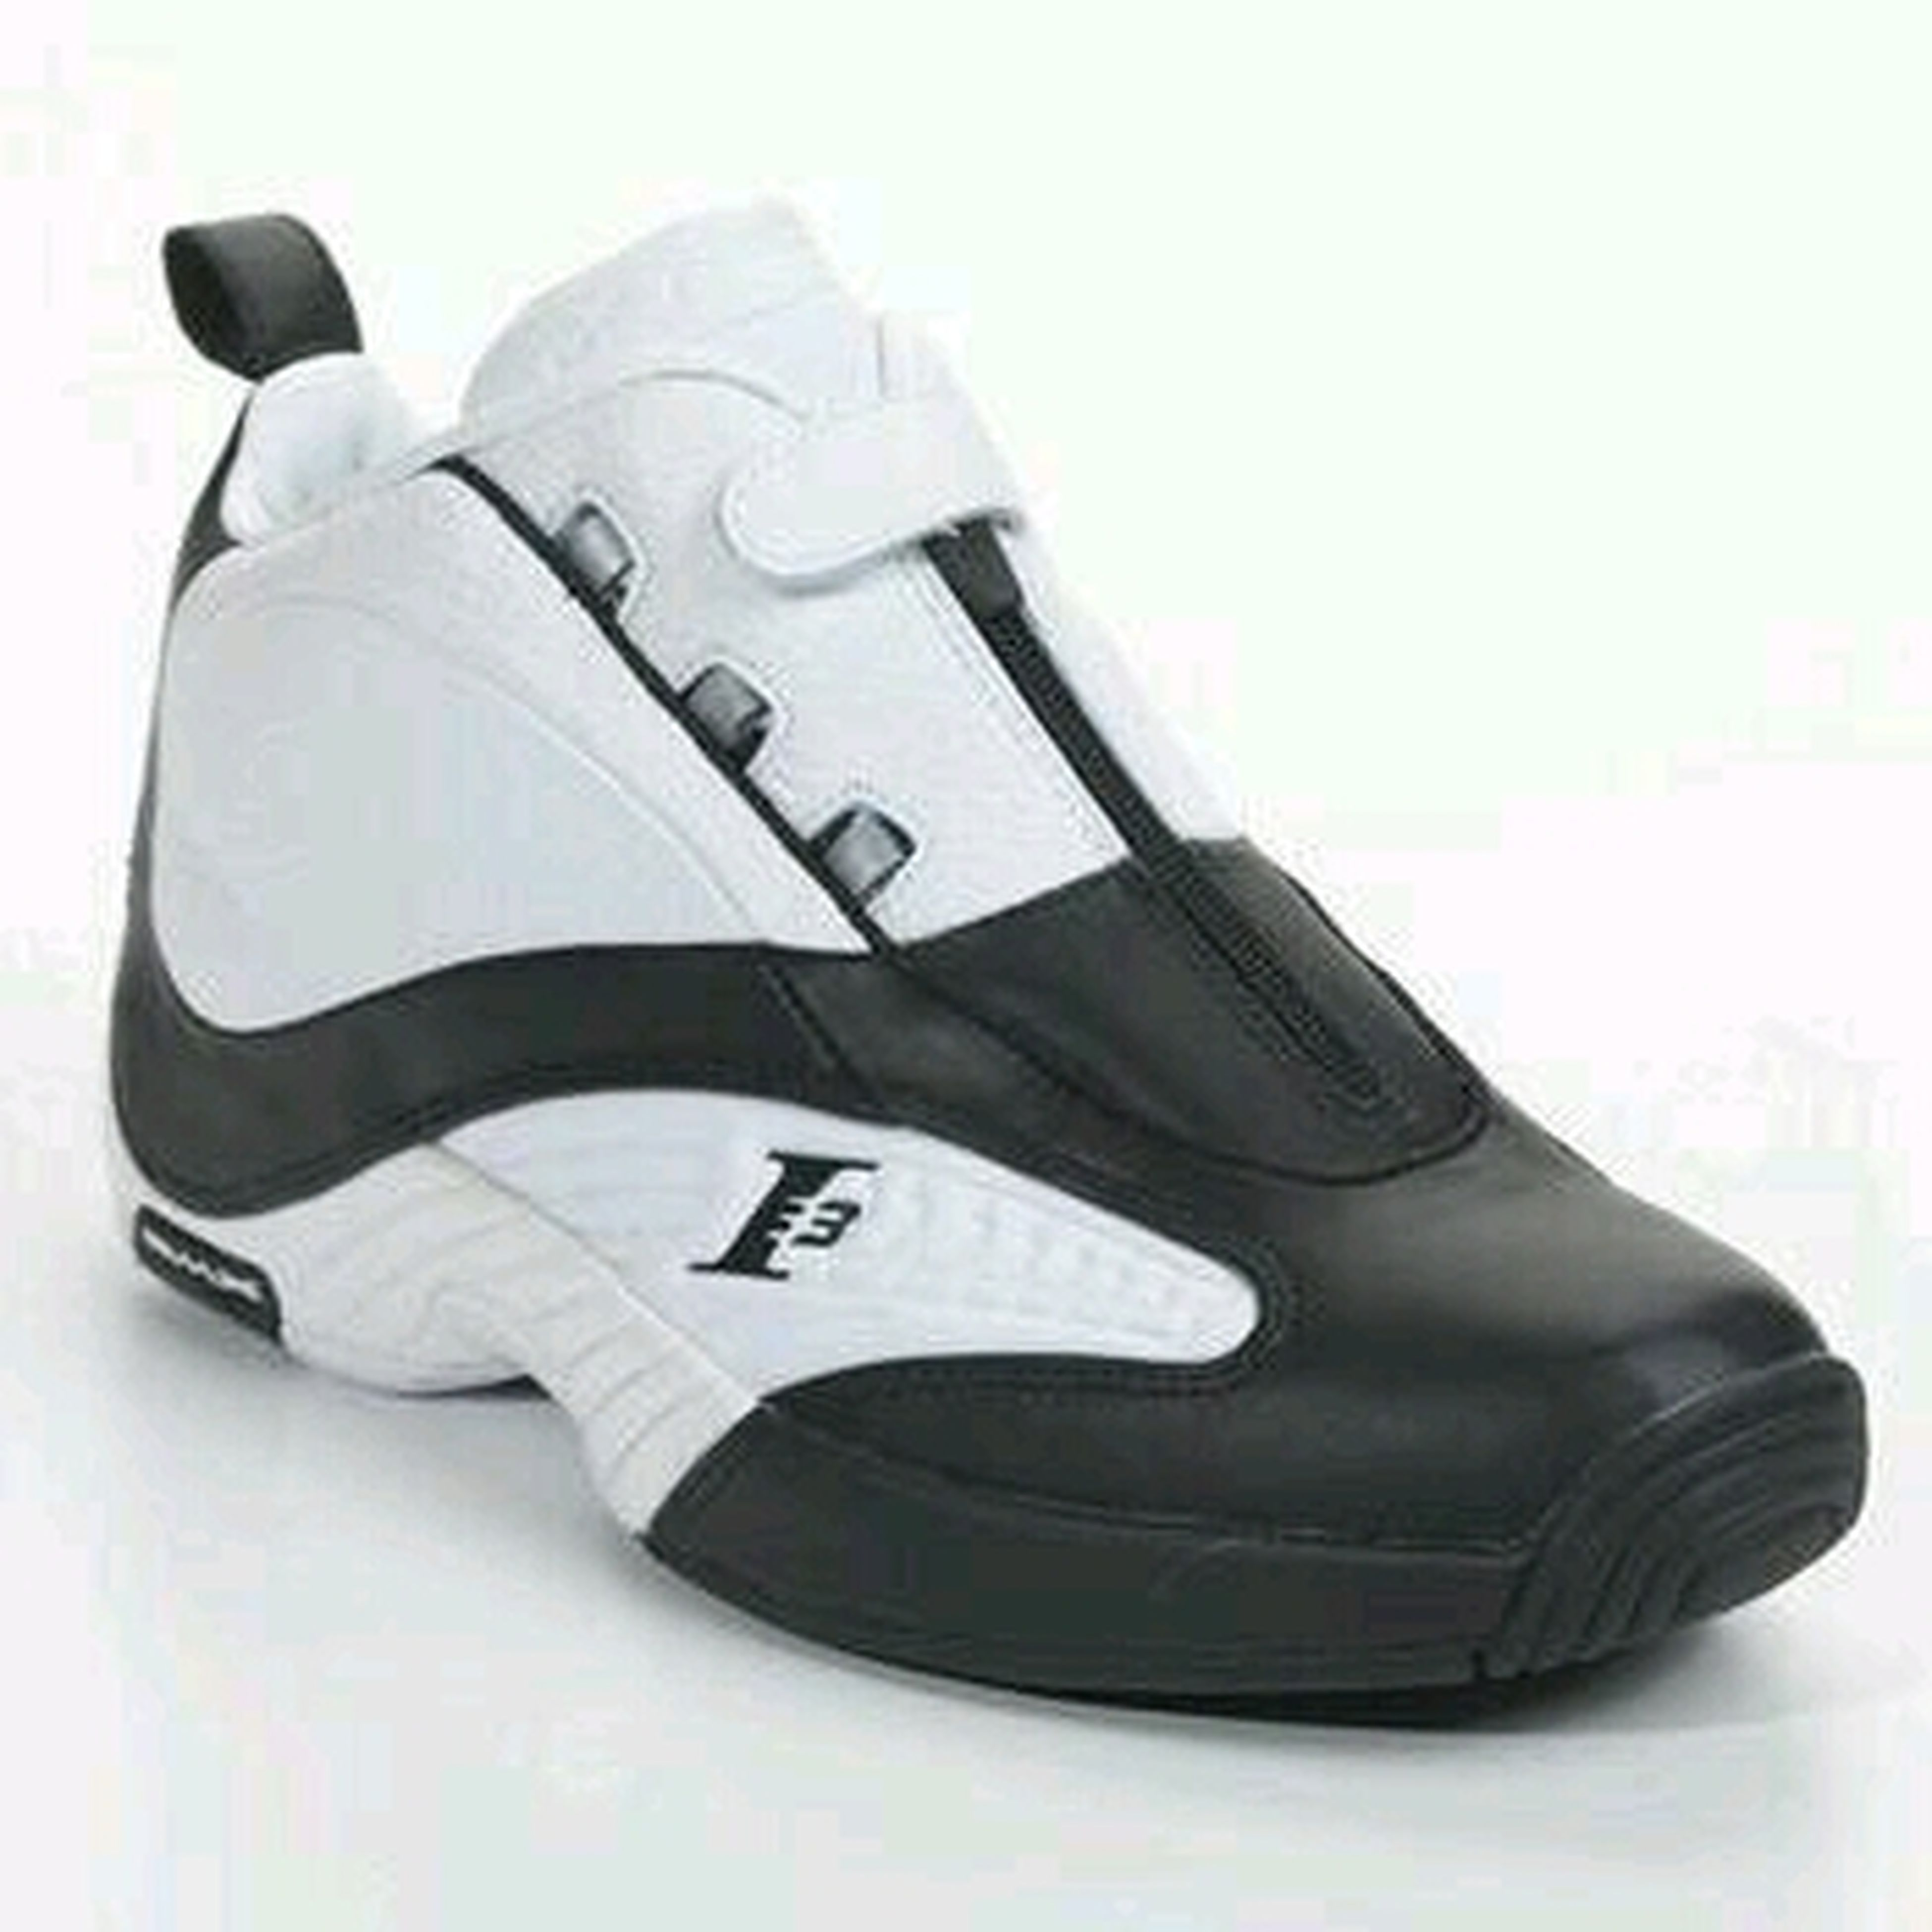 Classic Allen Iverson 4 Only Truu Sneaker Heads Would Have A Pair Of These